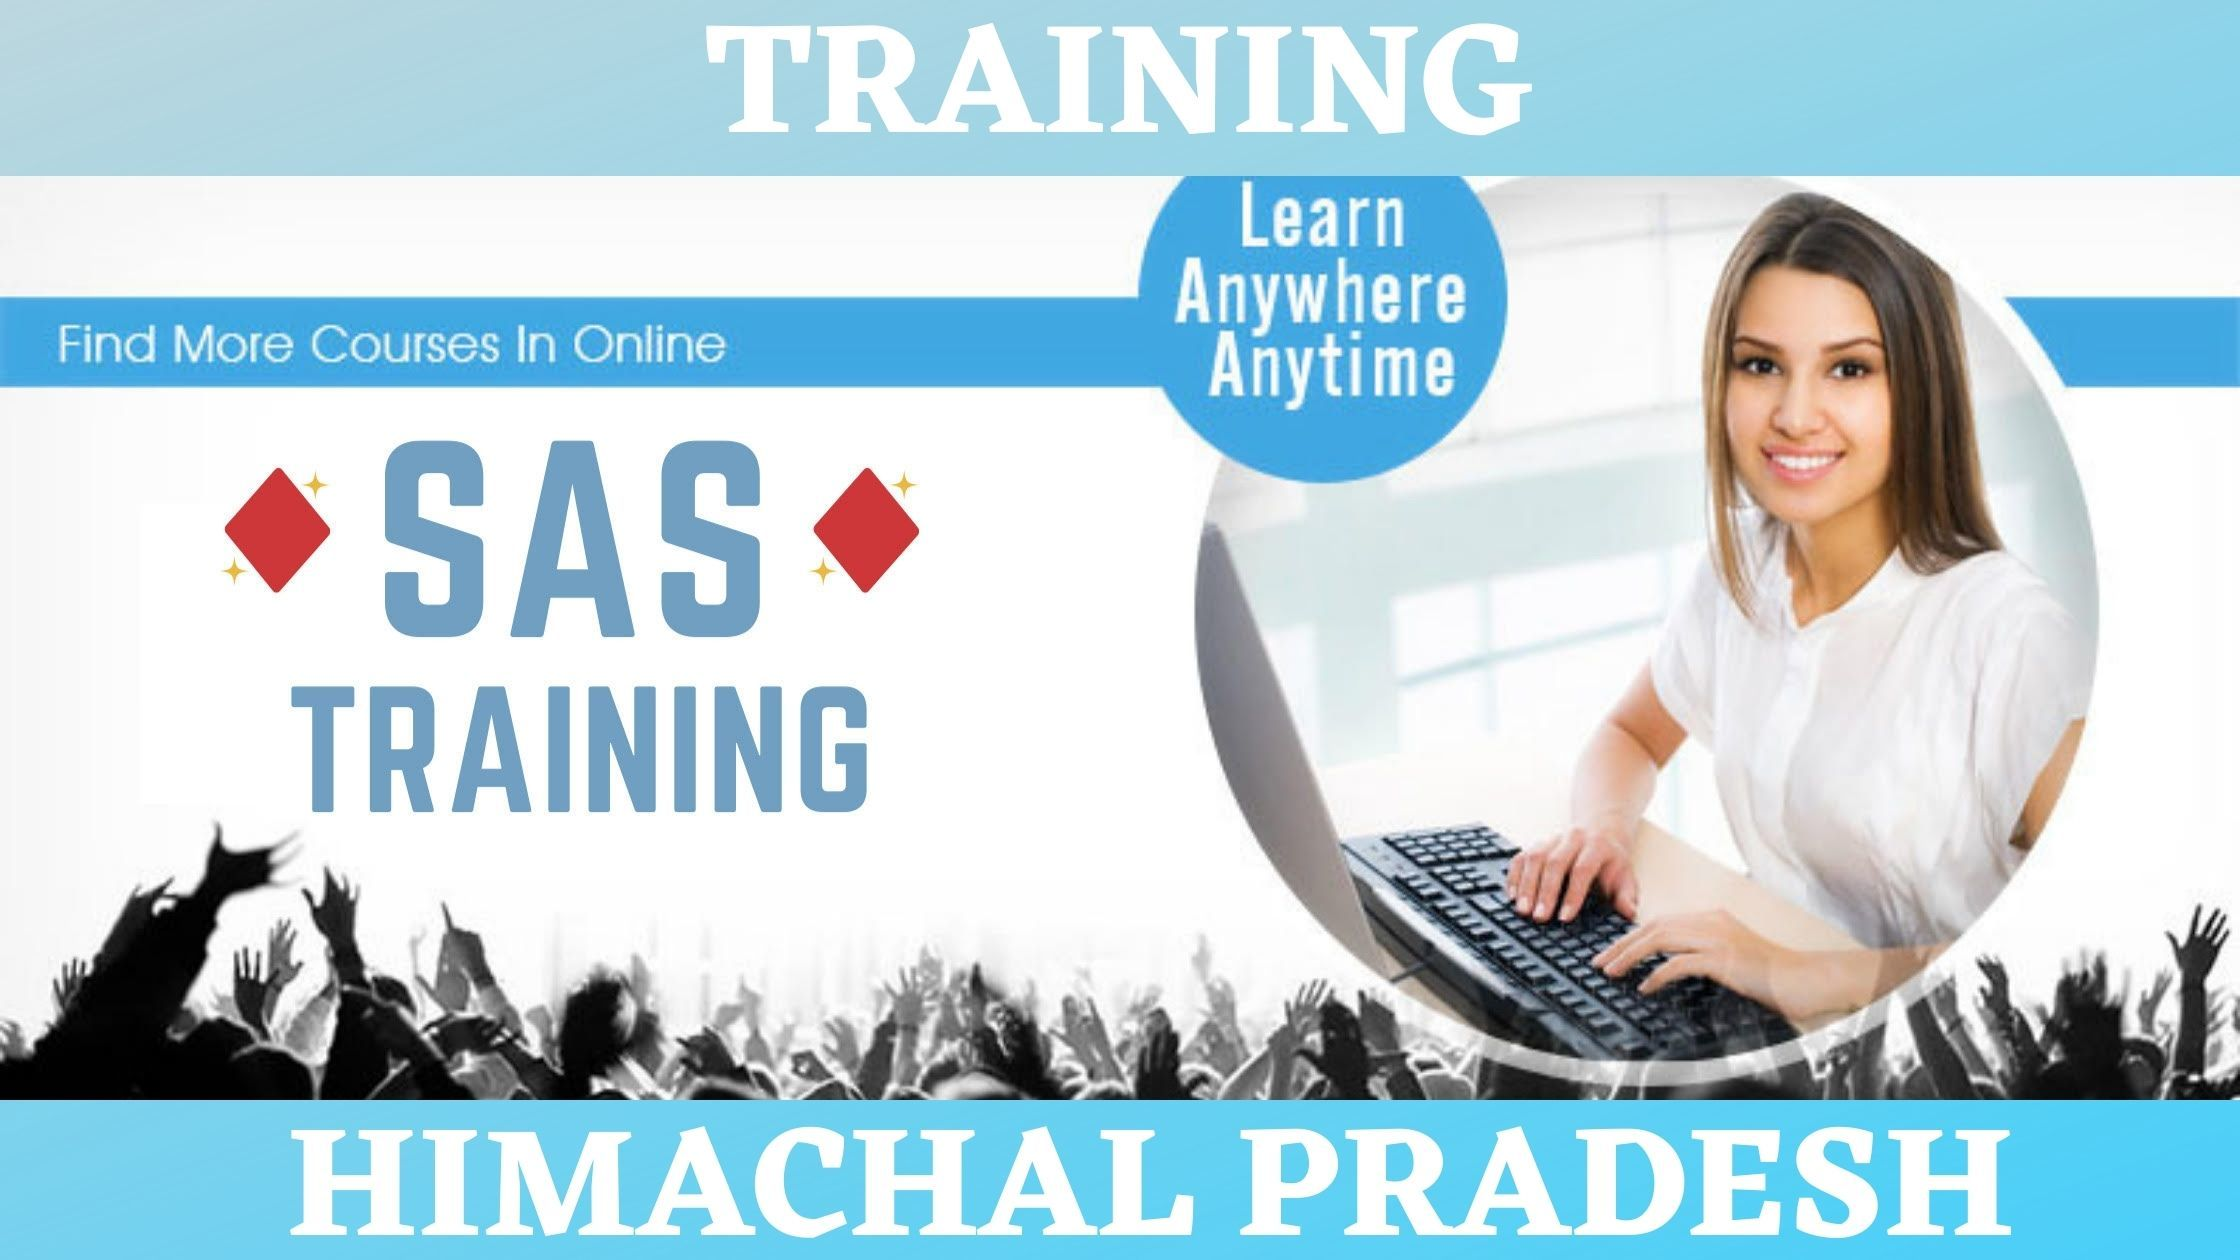 sas_training_in_himachal_pradesh -background.jpeg